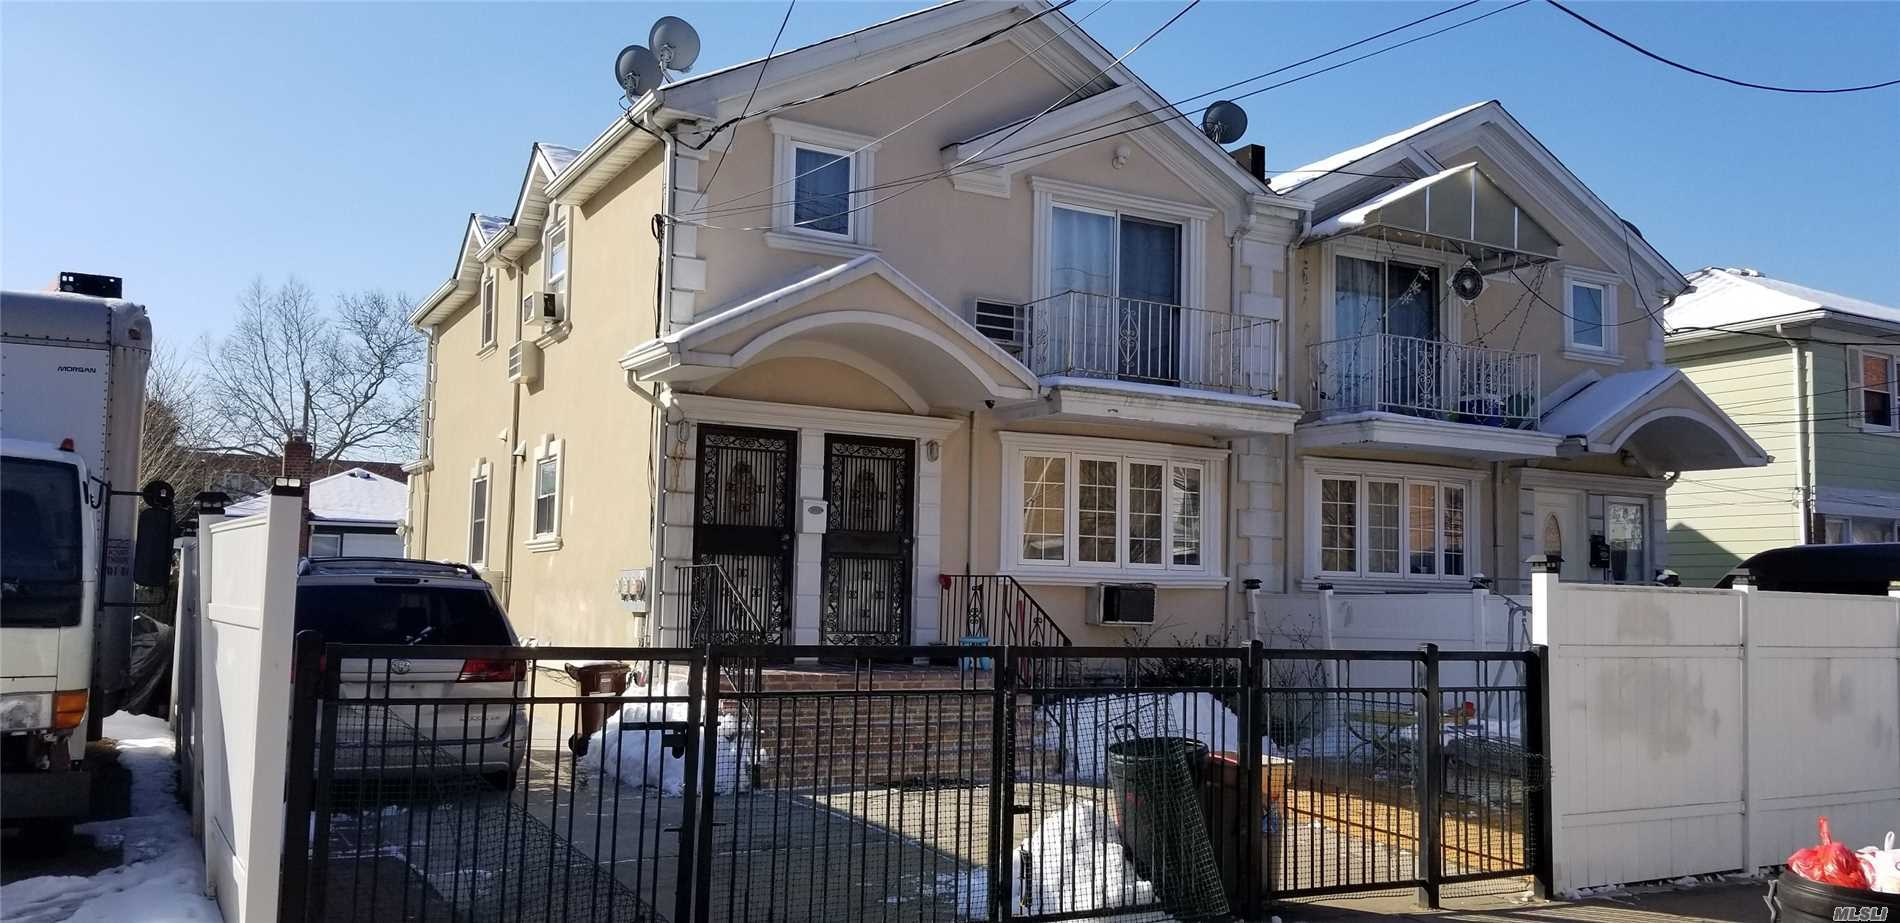 Beautiful 2005 Contemporary 2 Family Sd House In Fresh Meadows,  3Br/2bath over 2 Huge Br/2Bath with Front & Rear Terrace, Excellent Condition